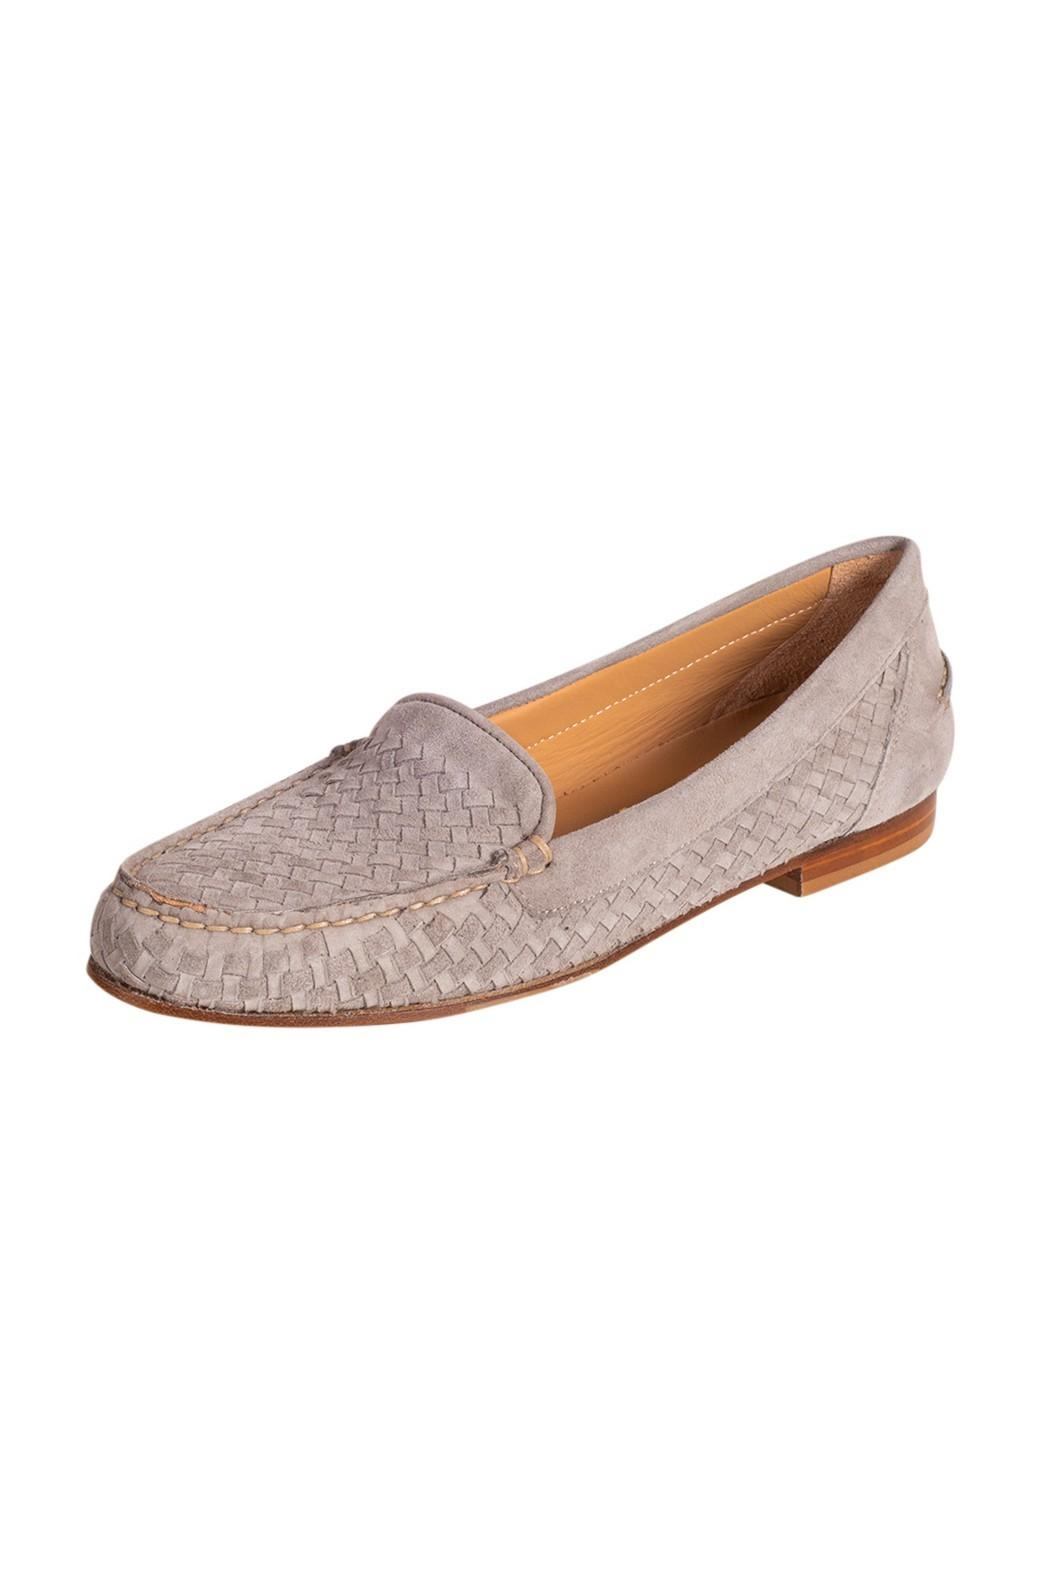 Pascucci Stone Suede Loafer - Front Full Image